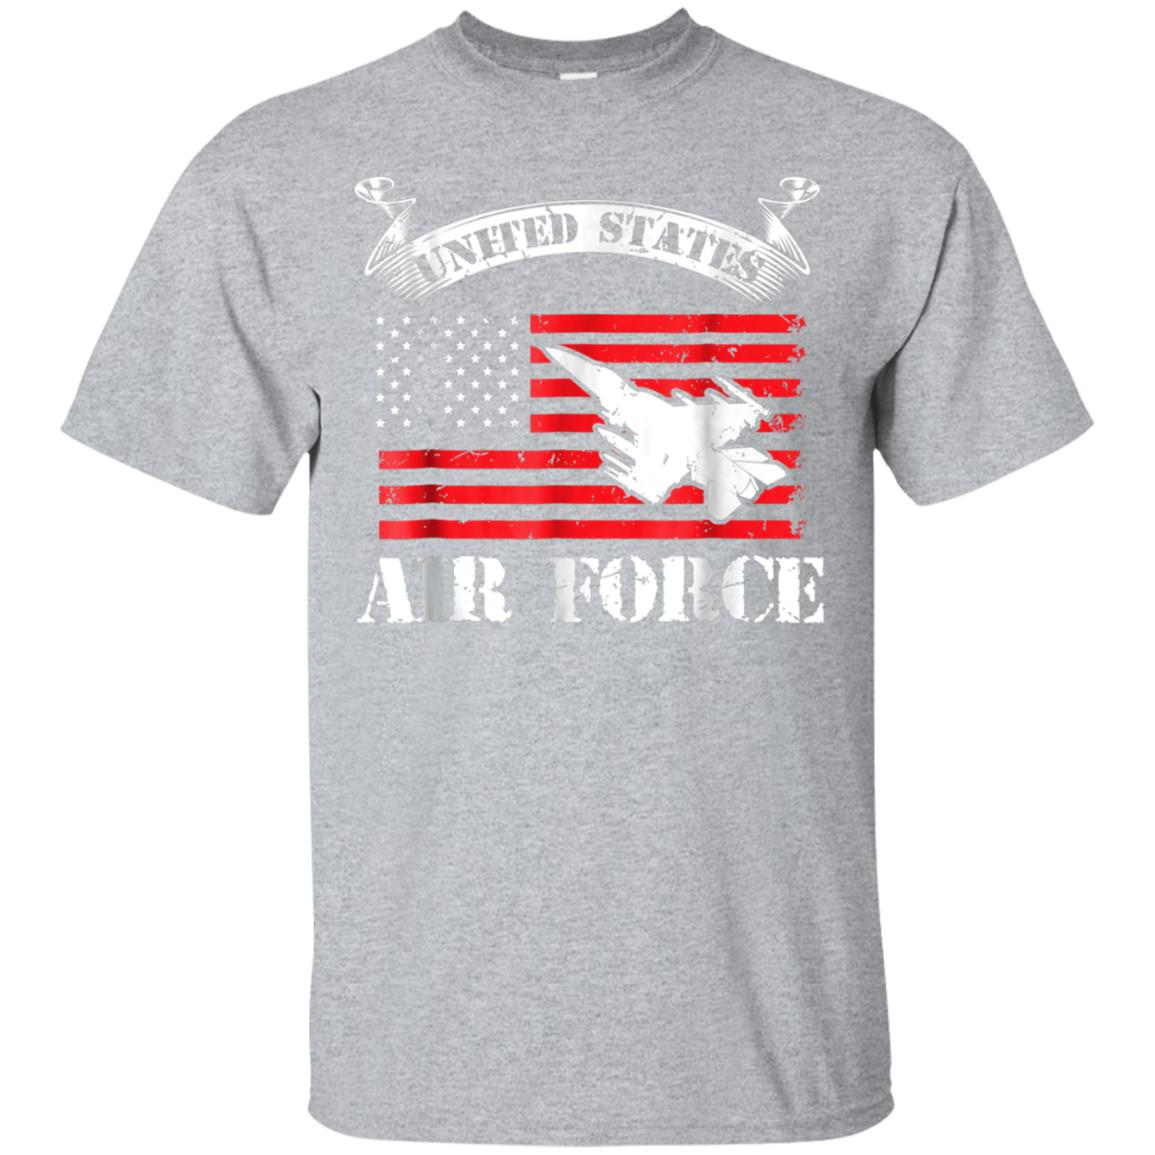 Air Force shirt US Flag F-16 Fighter Falcon Pride Tee 99promocode